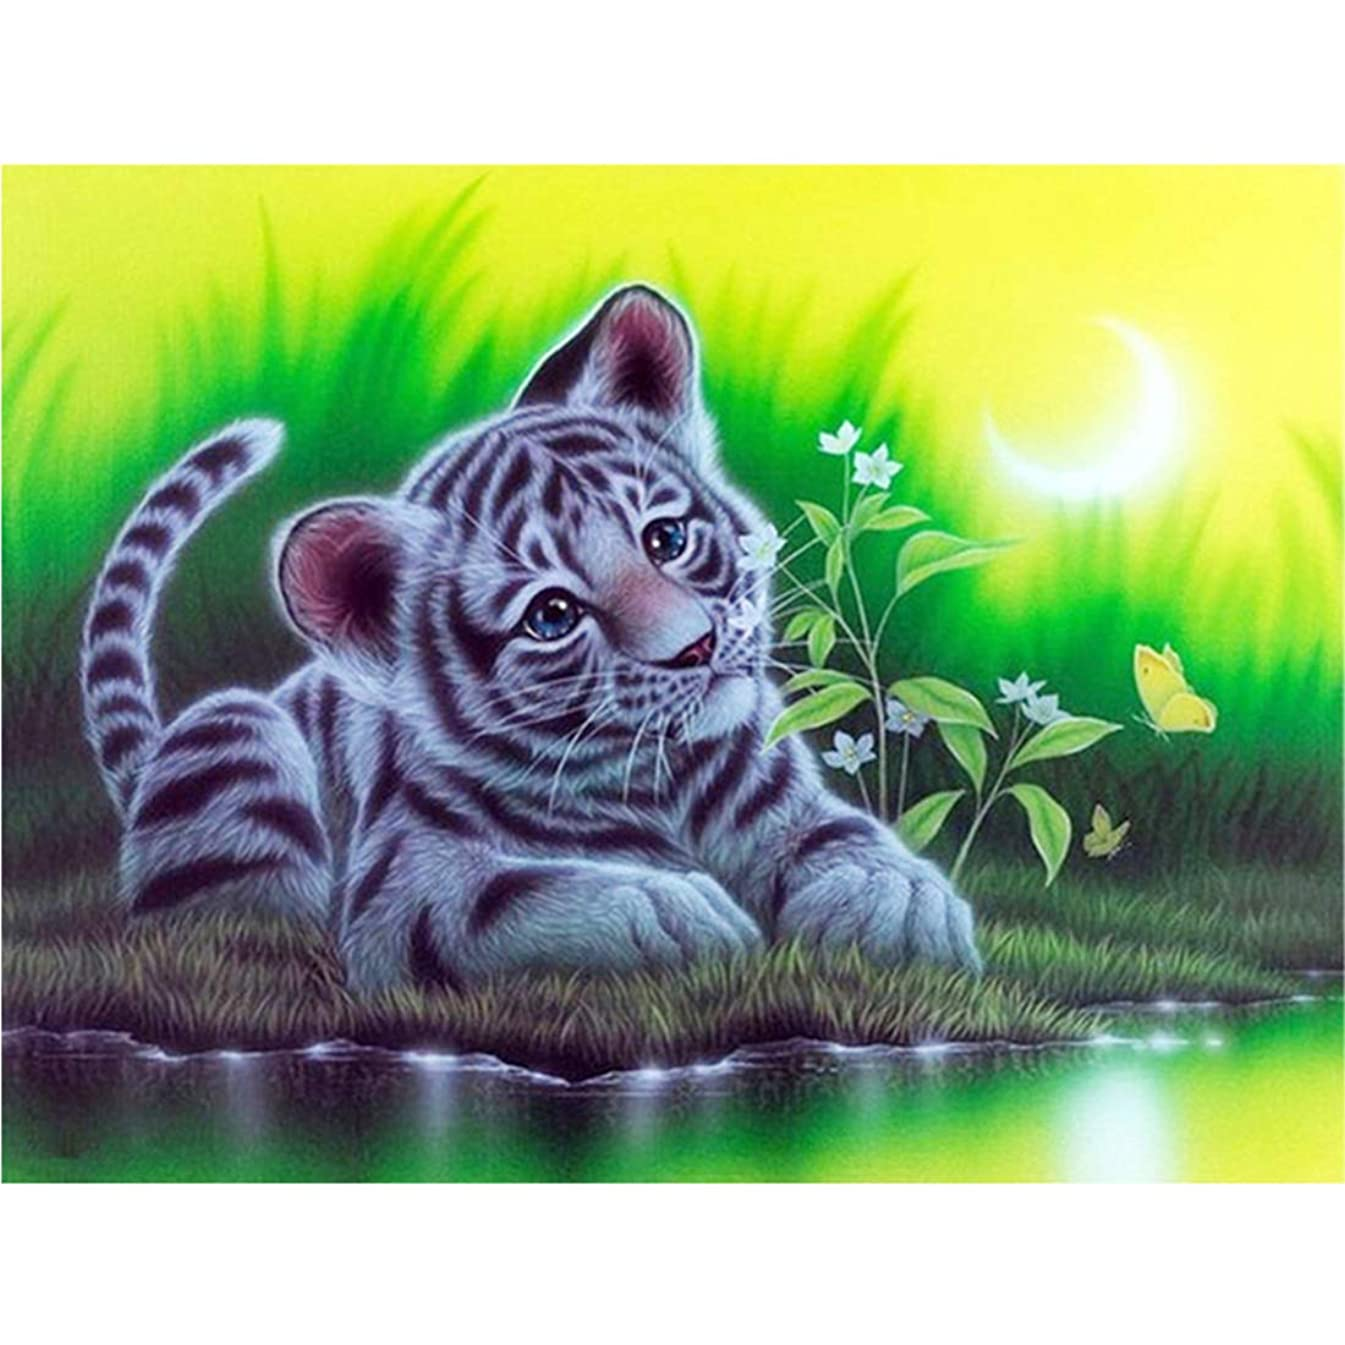 Full Drill DIY Square Diamond Painting by Number Kits, Cute Tiger Rhinestone Embroidery Cross Stitch Pictures Arts Craft for Home Wall Decor 11.8 x 15.8 inch